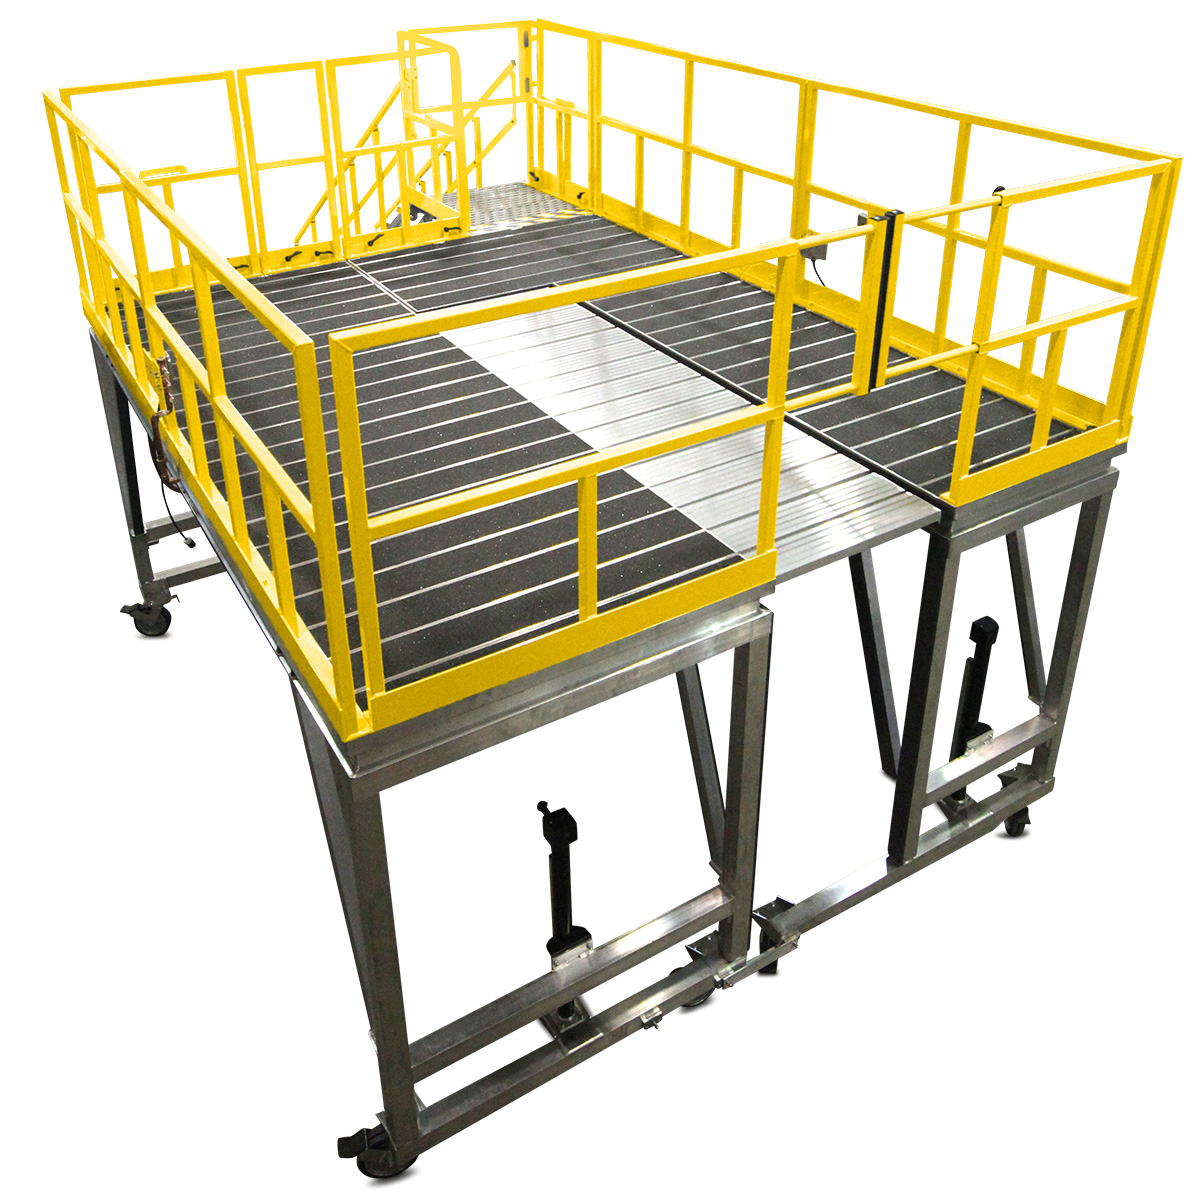 OSHA compliant mobile aluminum work platforms with linking capabilities and cantilever deck extensions to create a complete wrap around system for maintenance and 100% fall protection.